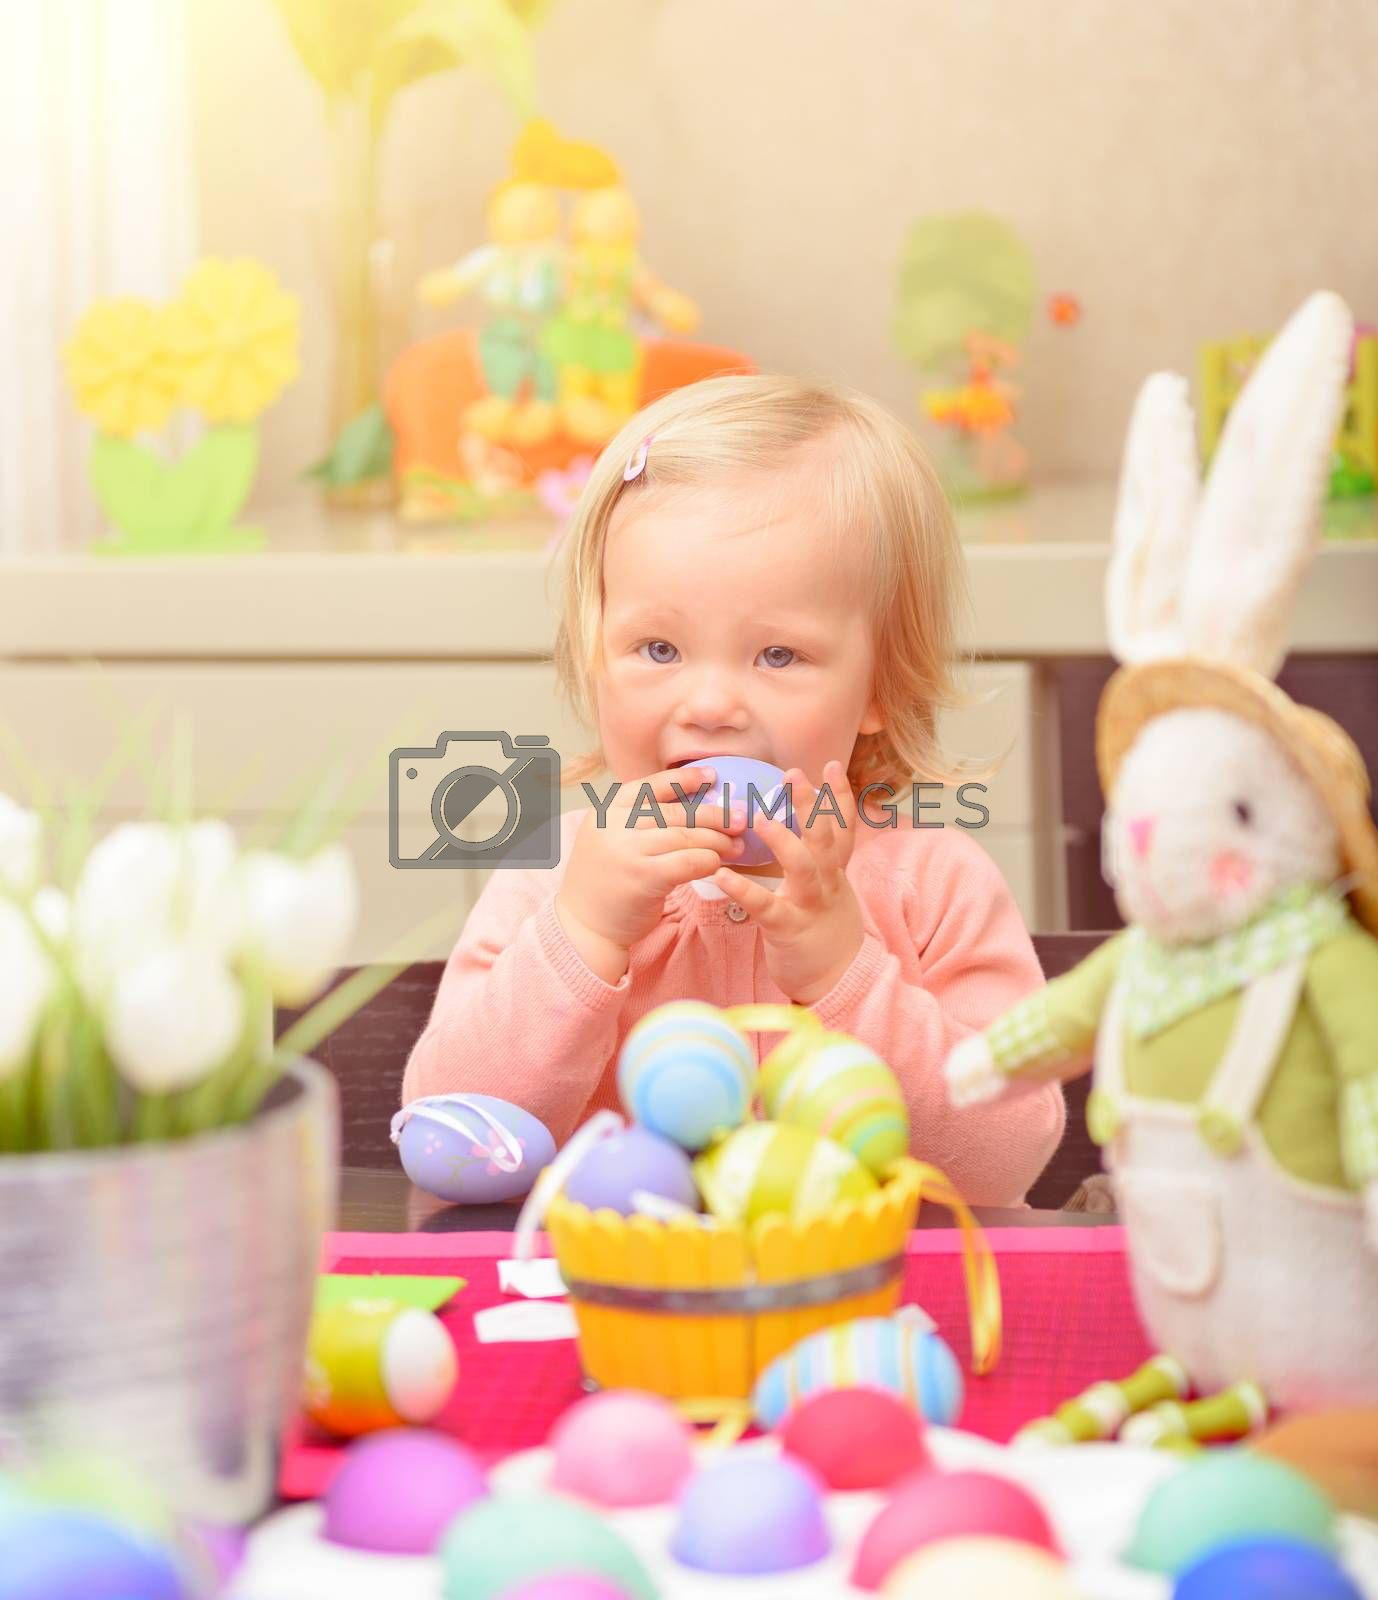 Adorable playful little girl coloring eggs for spring religious holiday, sitting near bunny toy, celebrating Easter at home